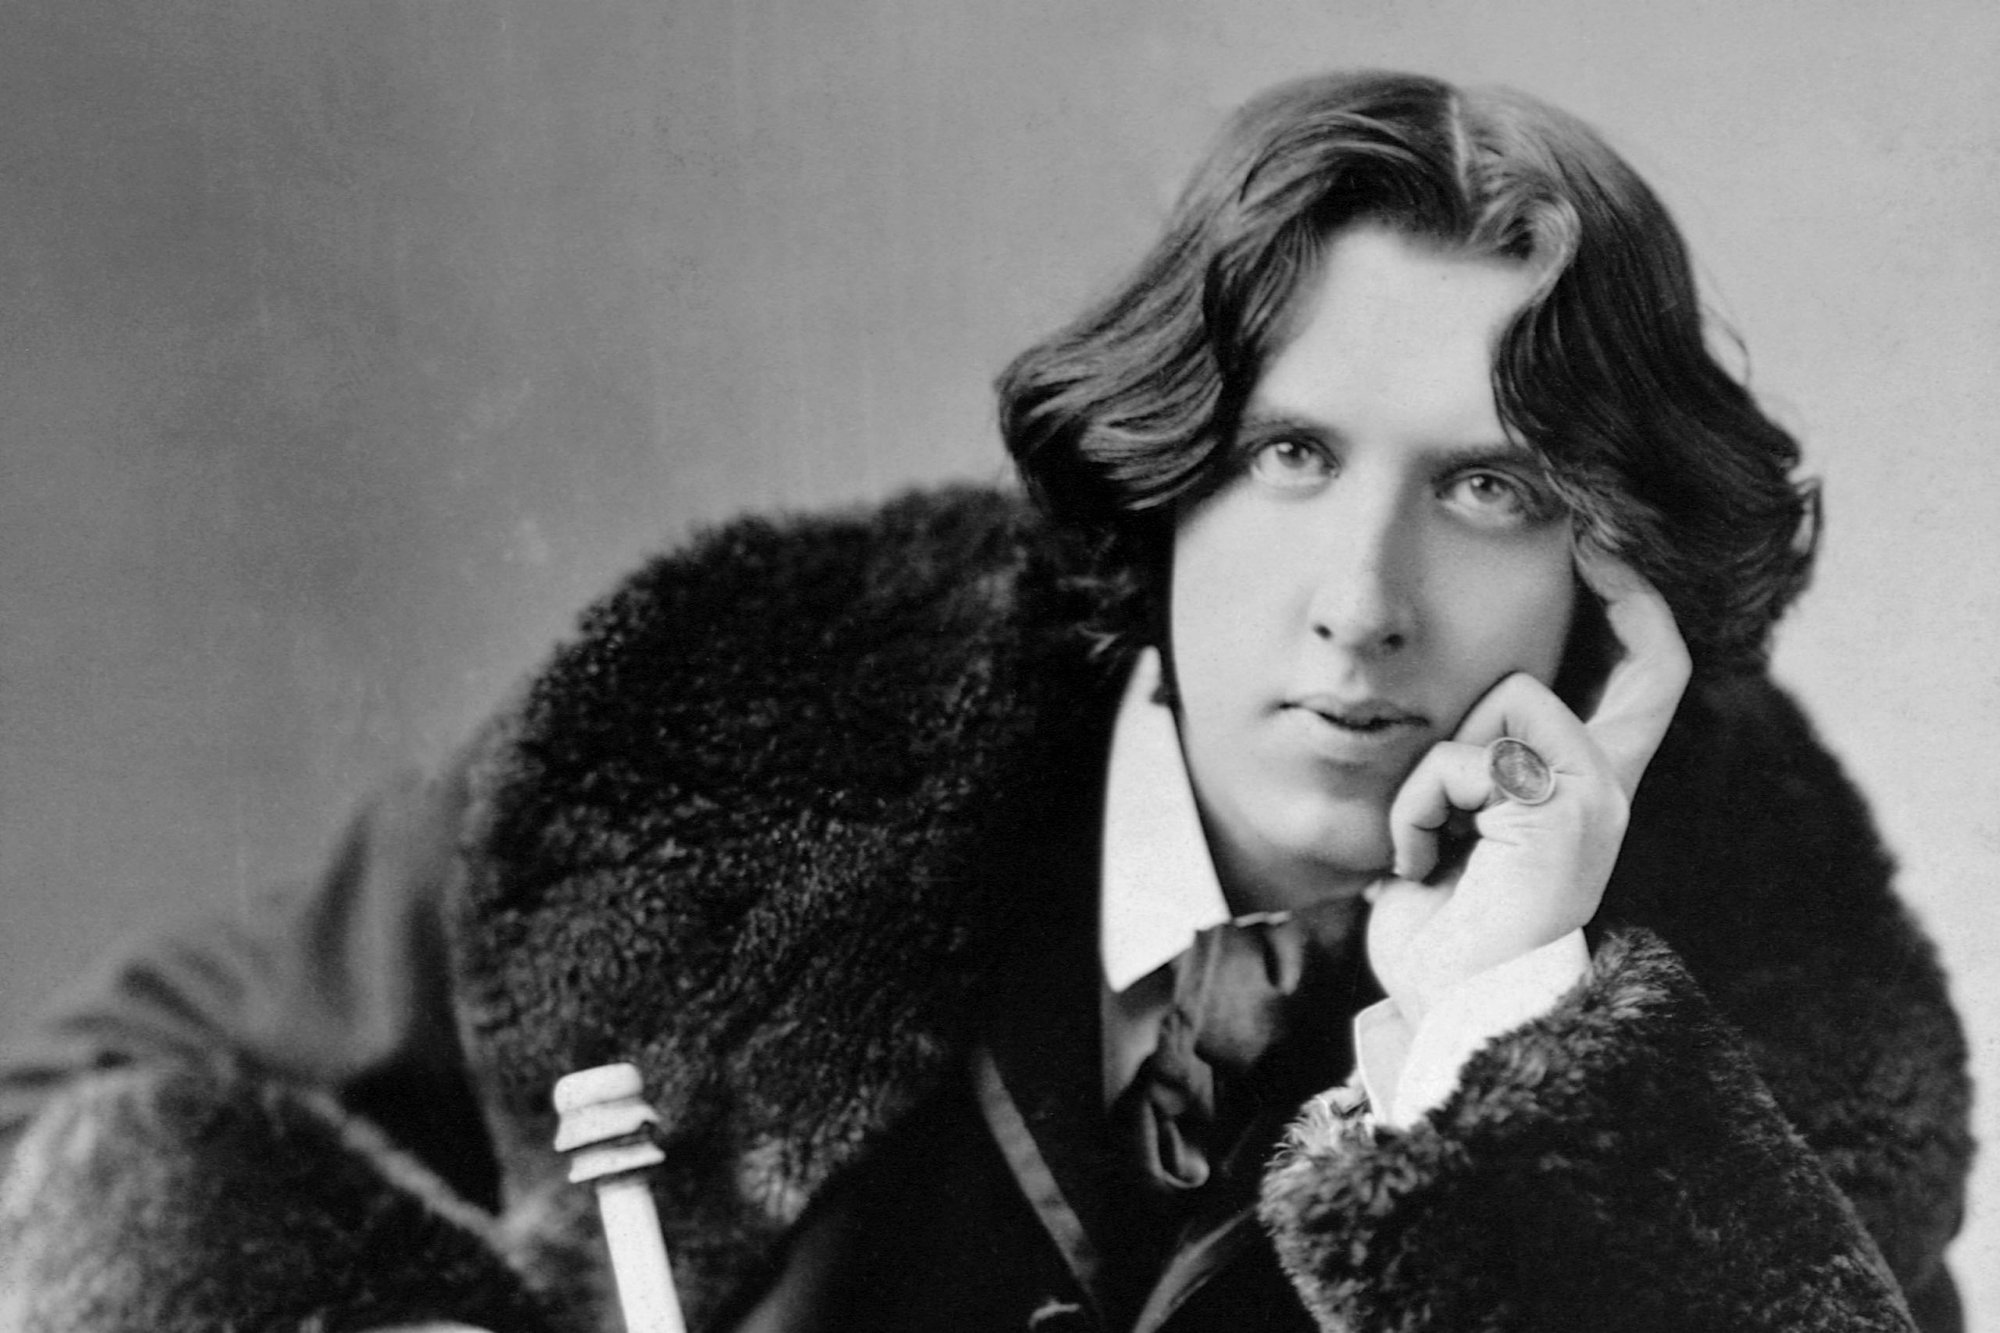 Oscar Wilde, photographed in New York during his 1882 lecture tour.